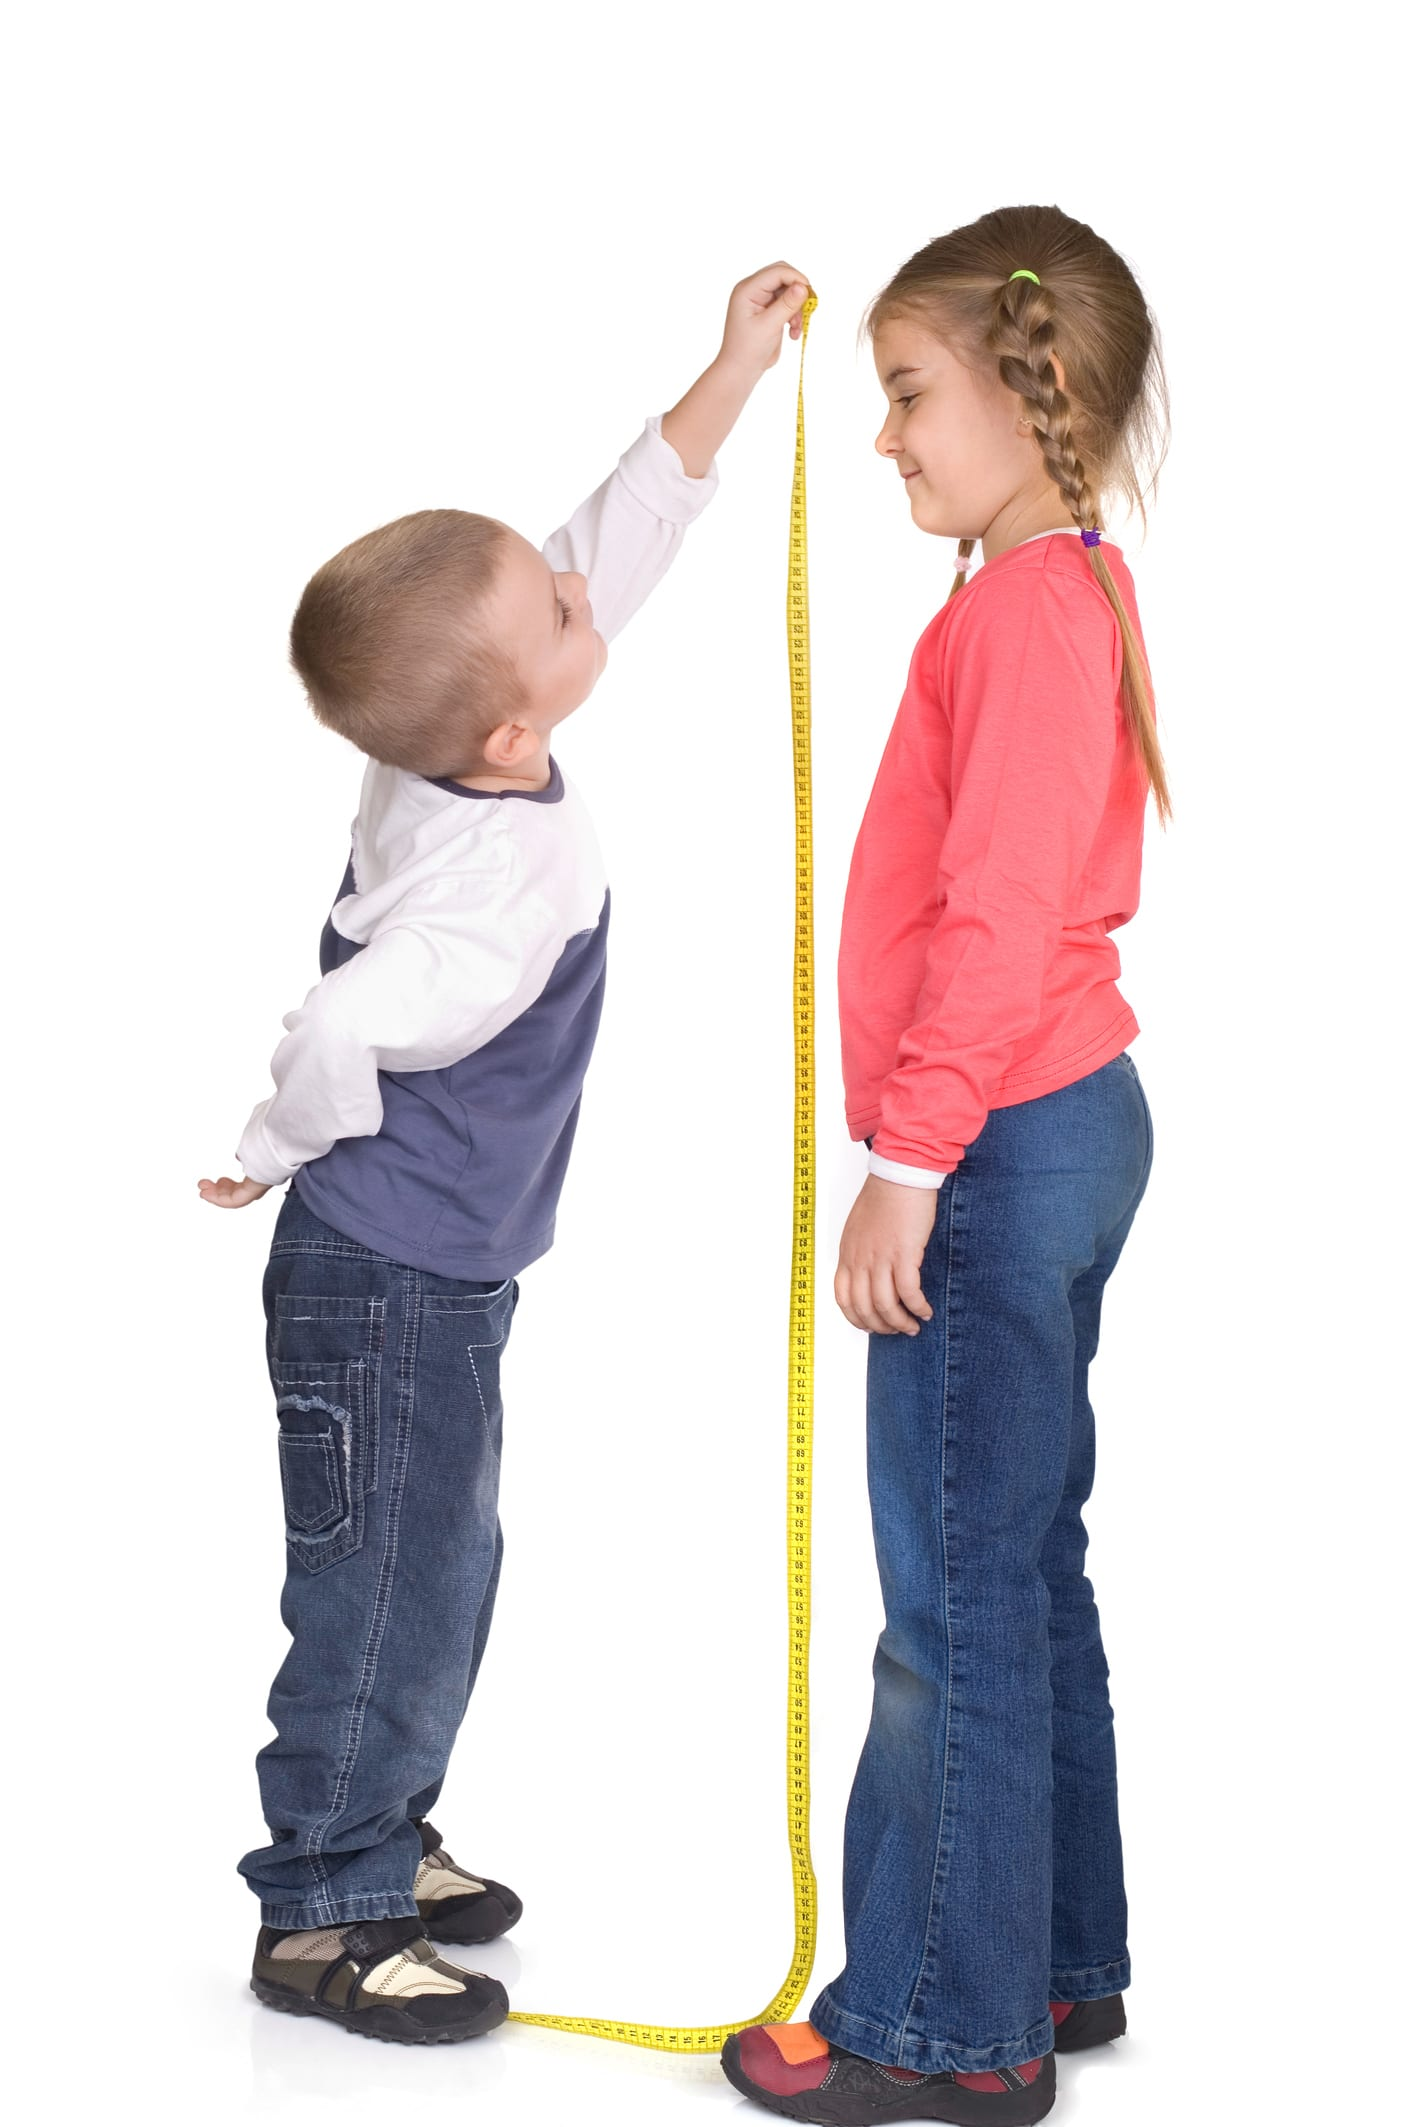 Little boy measuring the height of a slightly taller girl.